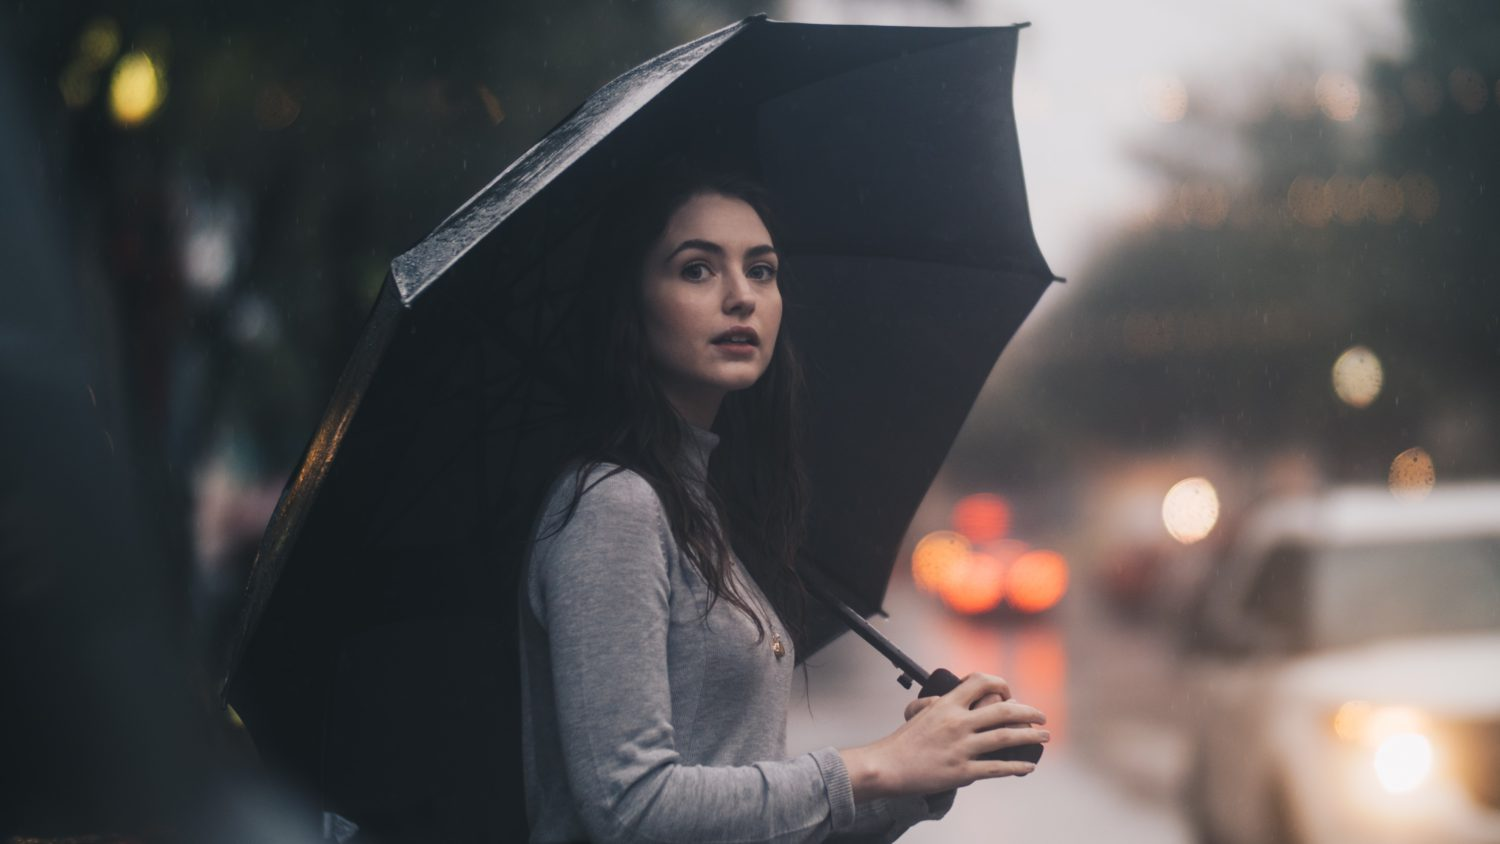 A young white female holding an umbrella, standing in the rain in a vibrant, multicultural city. She has the potential to become a great executive with the correct training and opportunities.